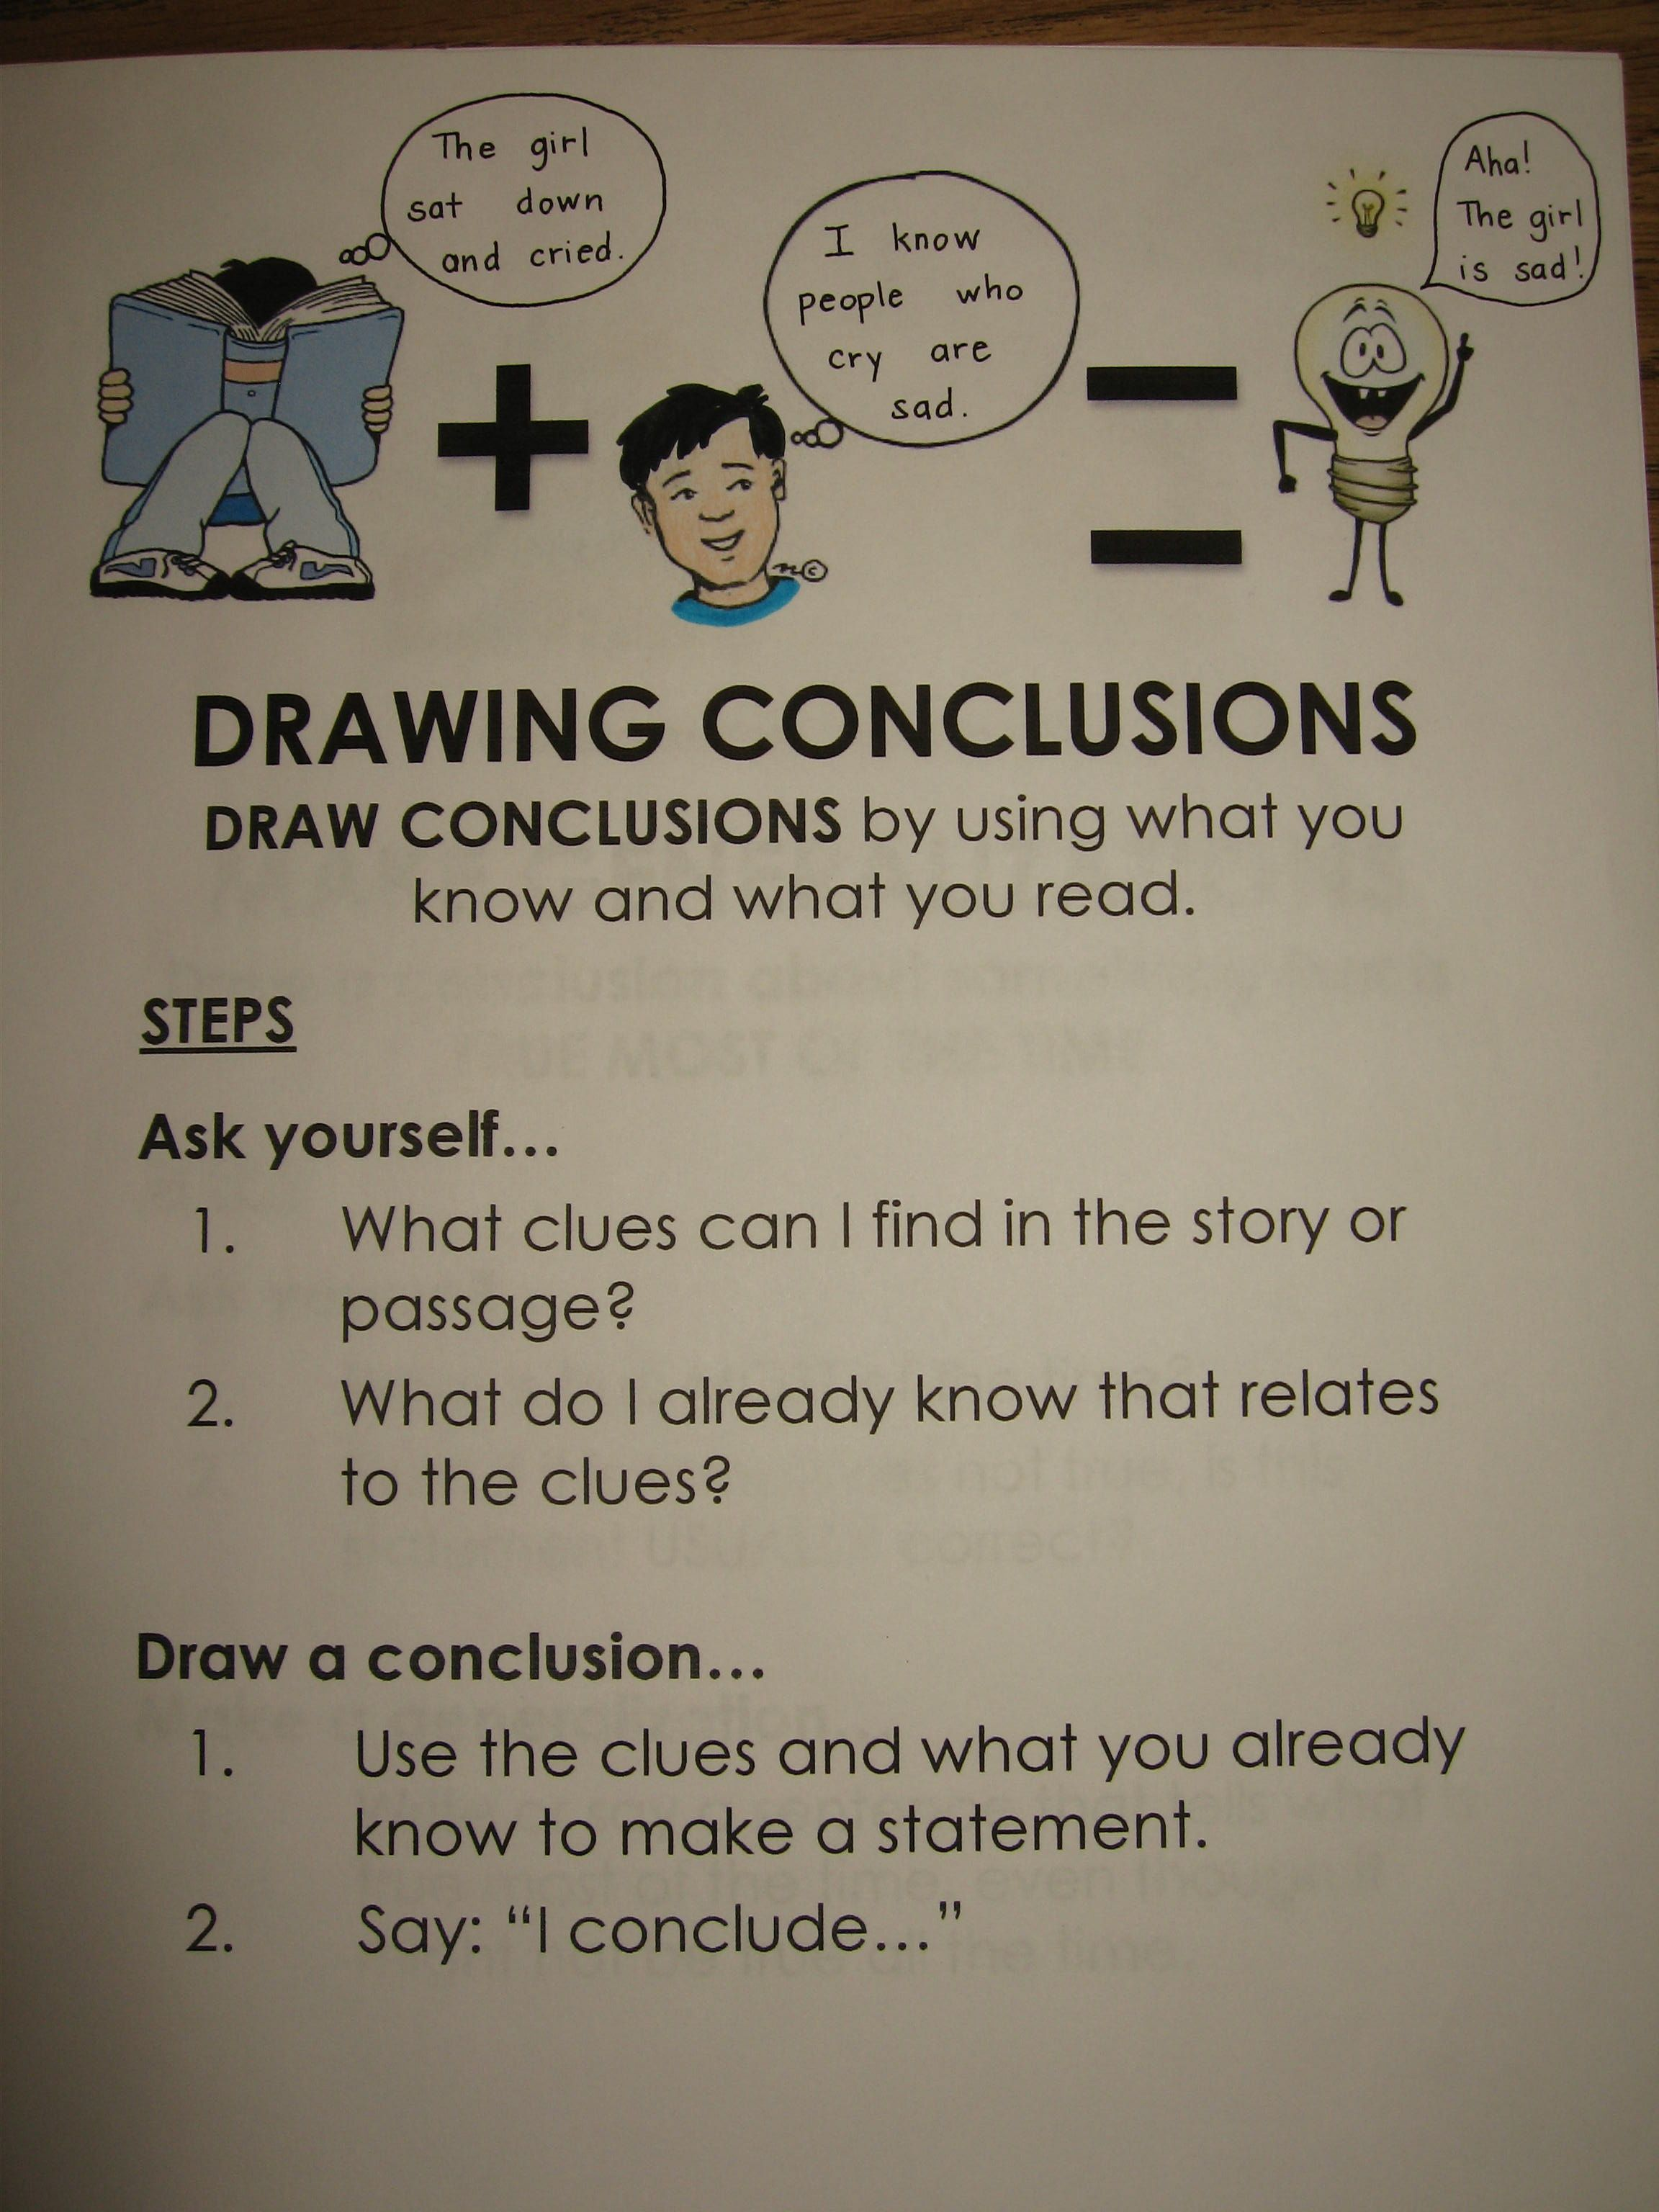 Drawing Conclusions Margaret Cho Hoang Upper Elementary Reading Inference Activities Elementary Reading [ 3072 x 2304 Pixel ]